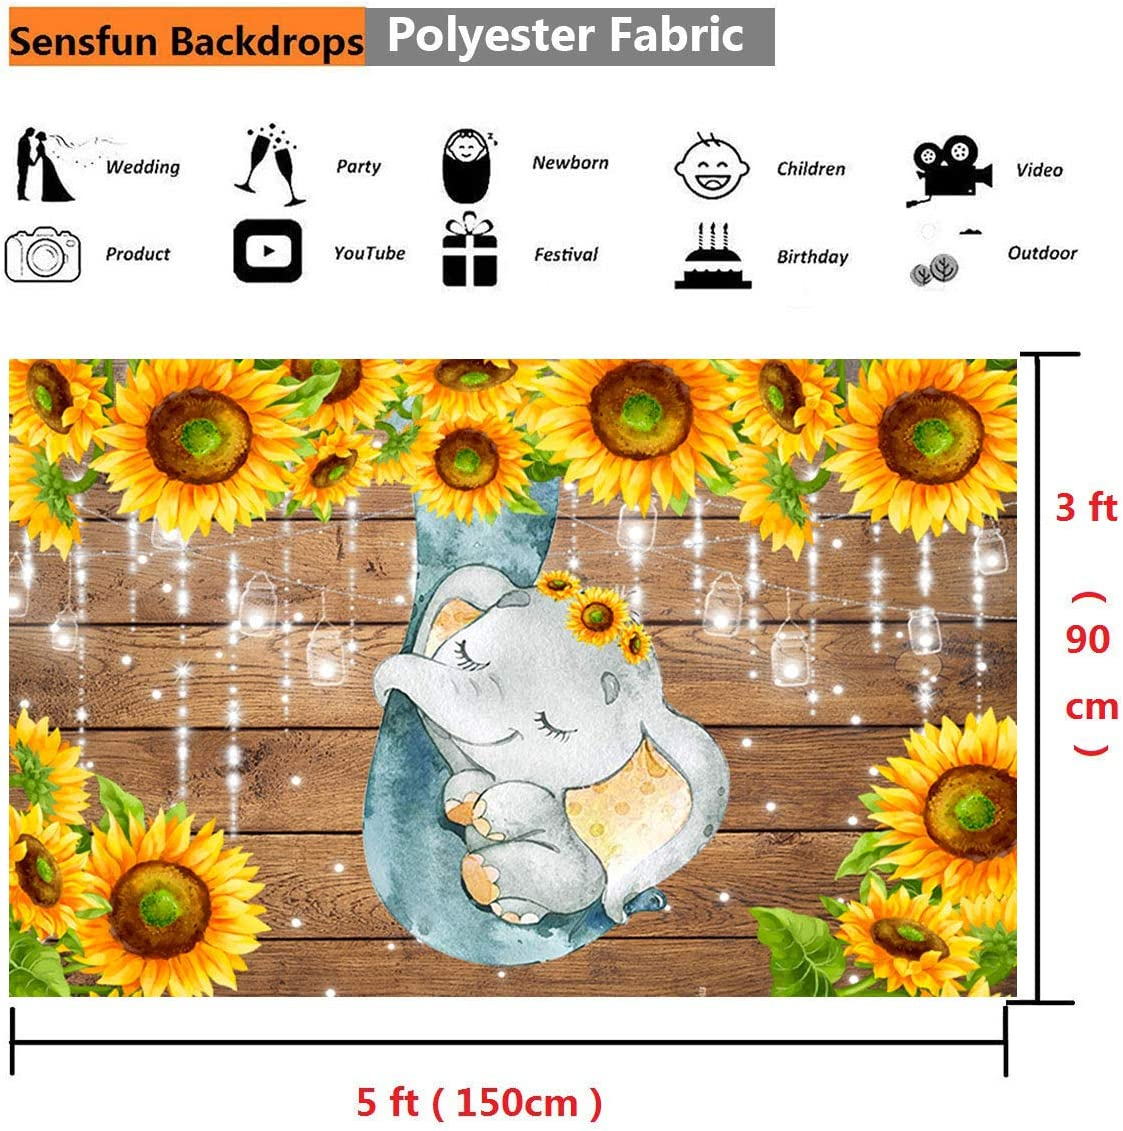 Sensfun Fabric Sunflower Elephant Baby Shower Backdrop Rustic Wood Cute Sleeping Elephant Photography Background for Baby Boy Newborn Girls 1st Birthday Party Decoration Photo Booth Shoot Props 7x5FT